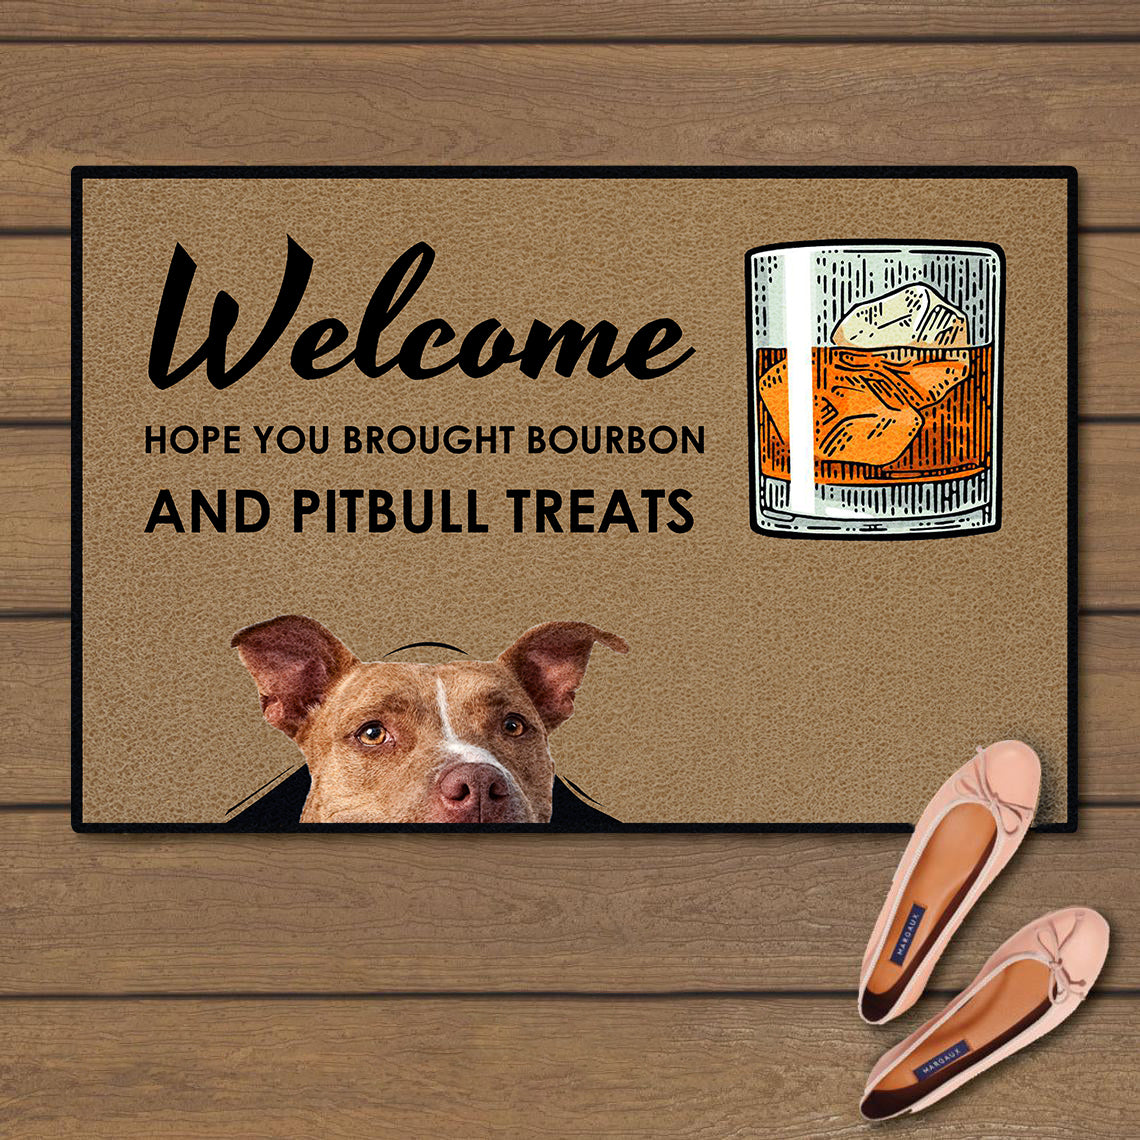 Welcome hope you brought bourbon and pitbull treats